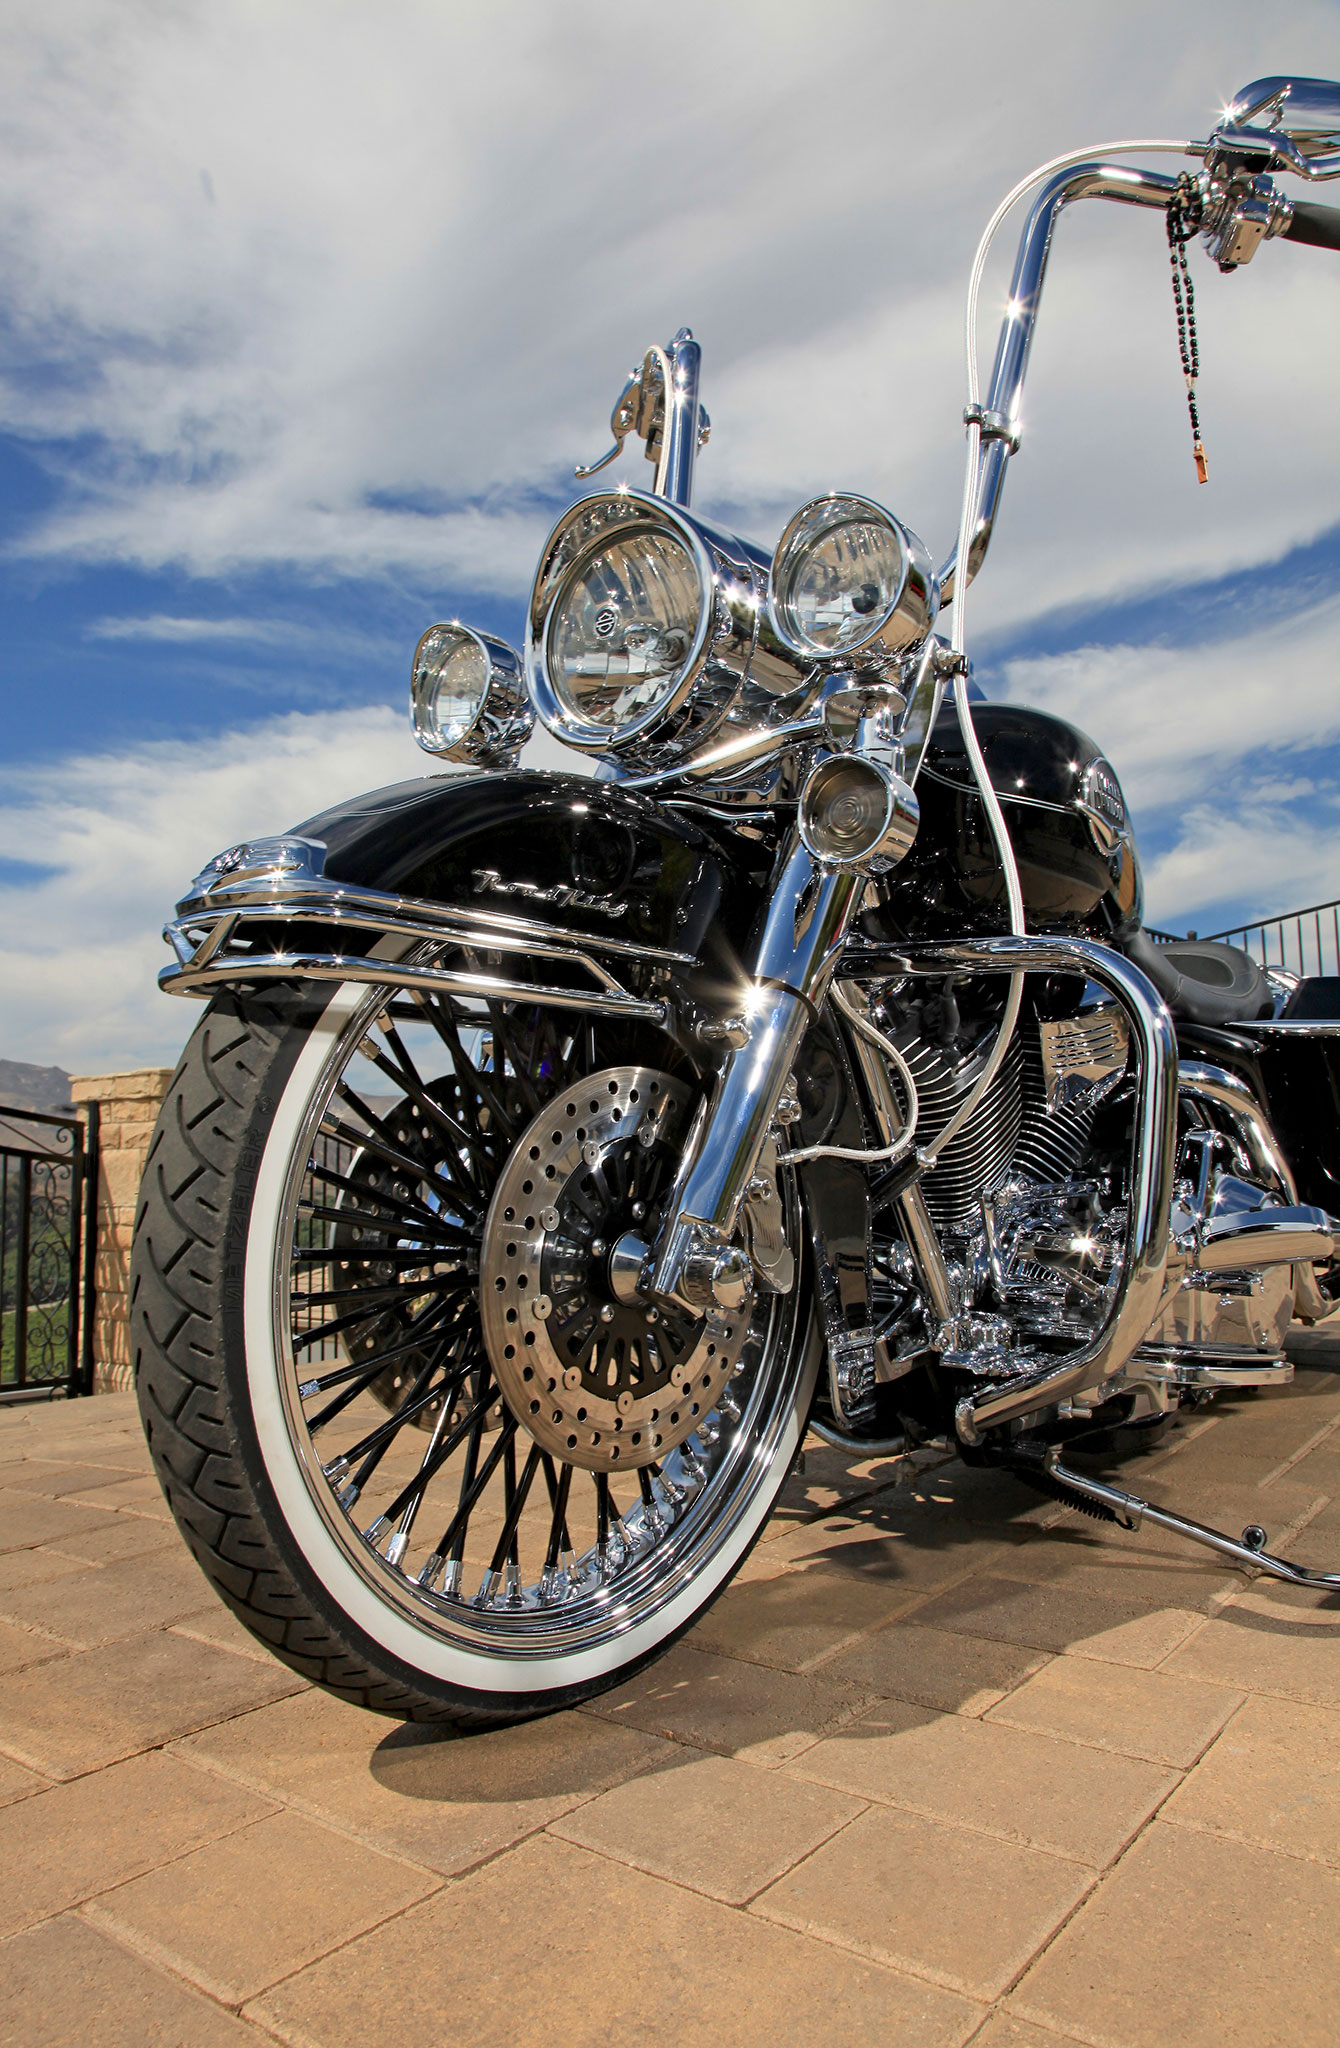 2008 Harley Davidson Road King Classic - Wicked HD